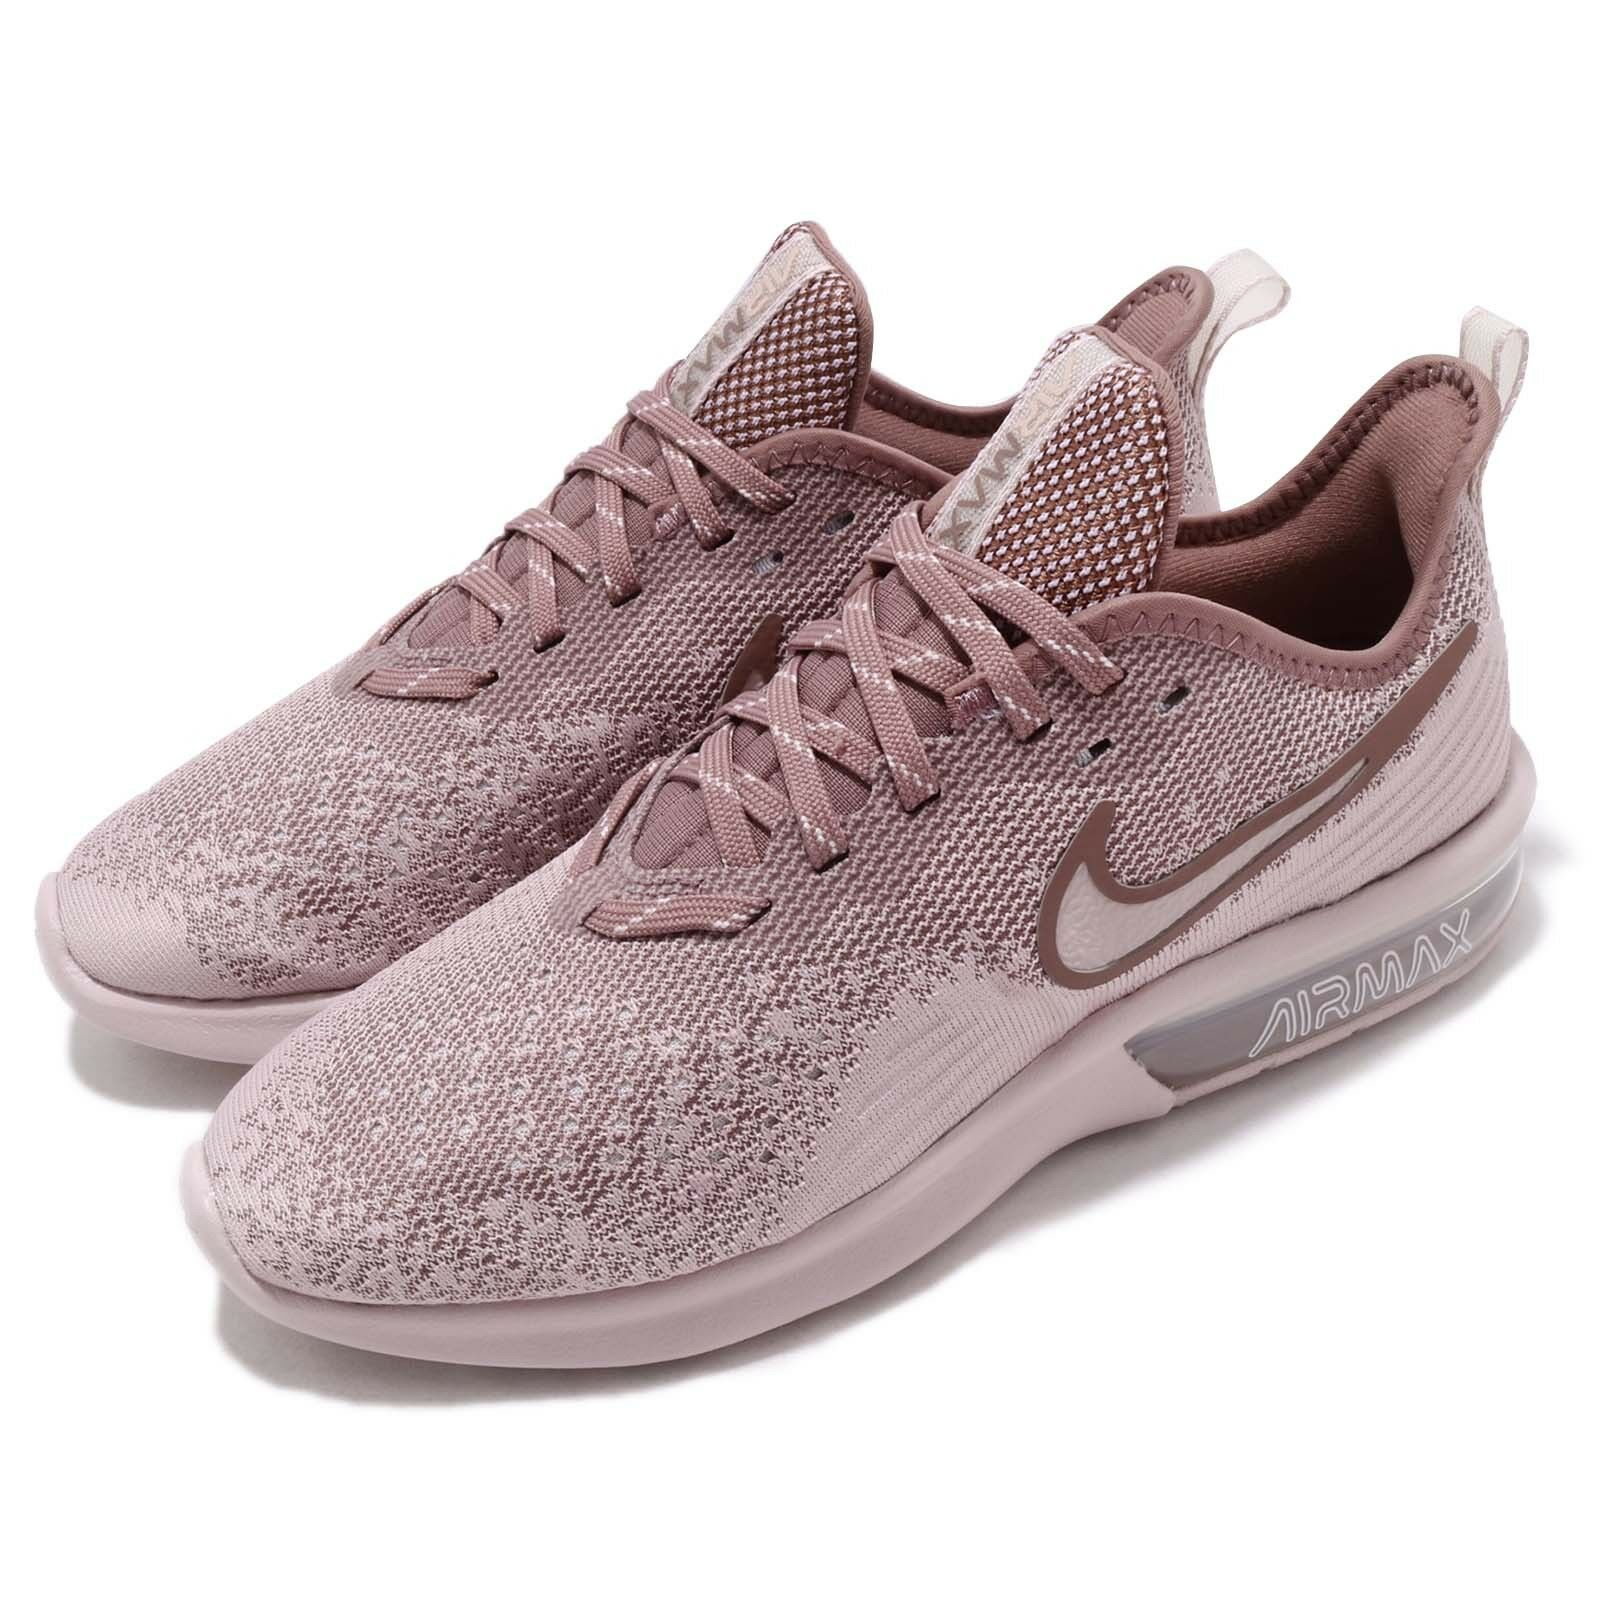 285b9667a9 Nike Wmns Air Max Sequent 4 IV Particle pink Women Running shoes AO4486-600